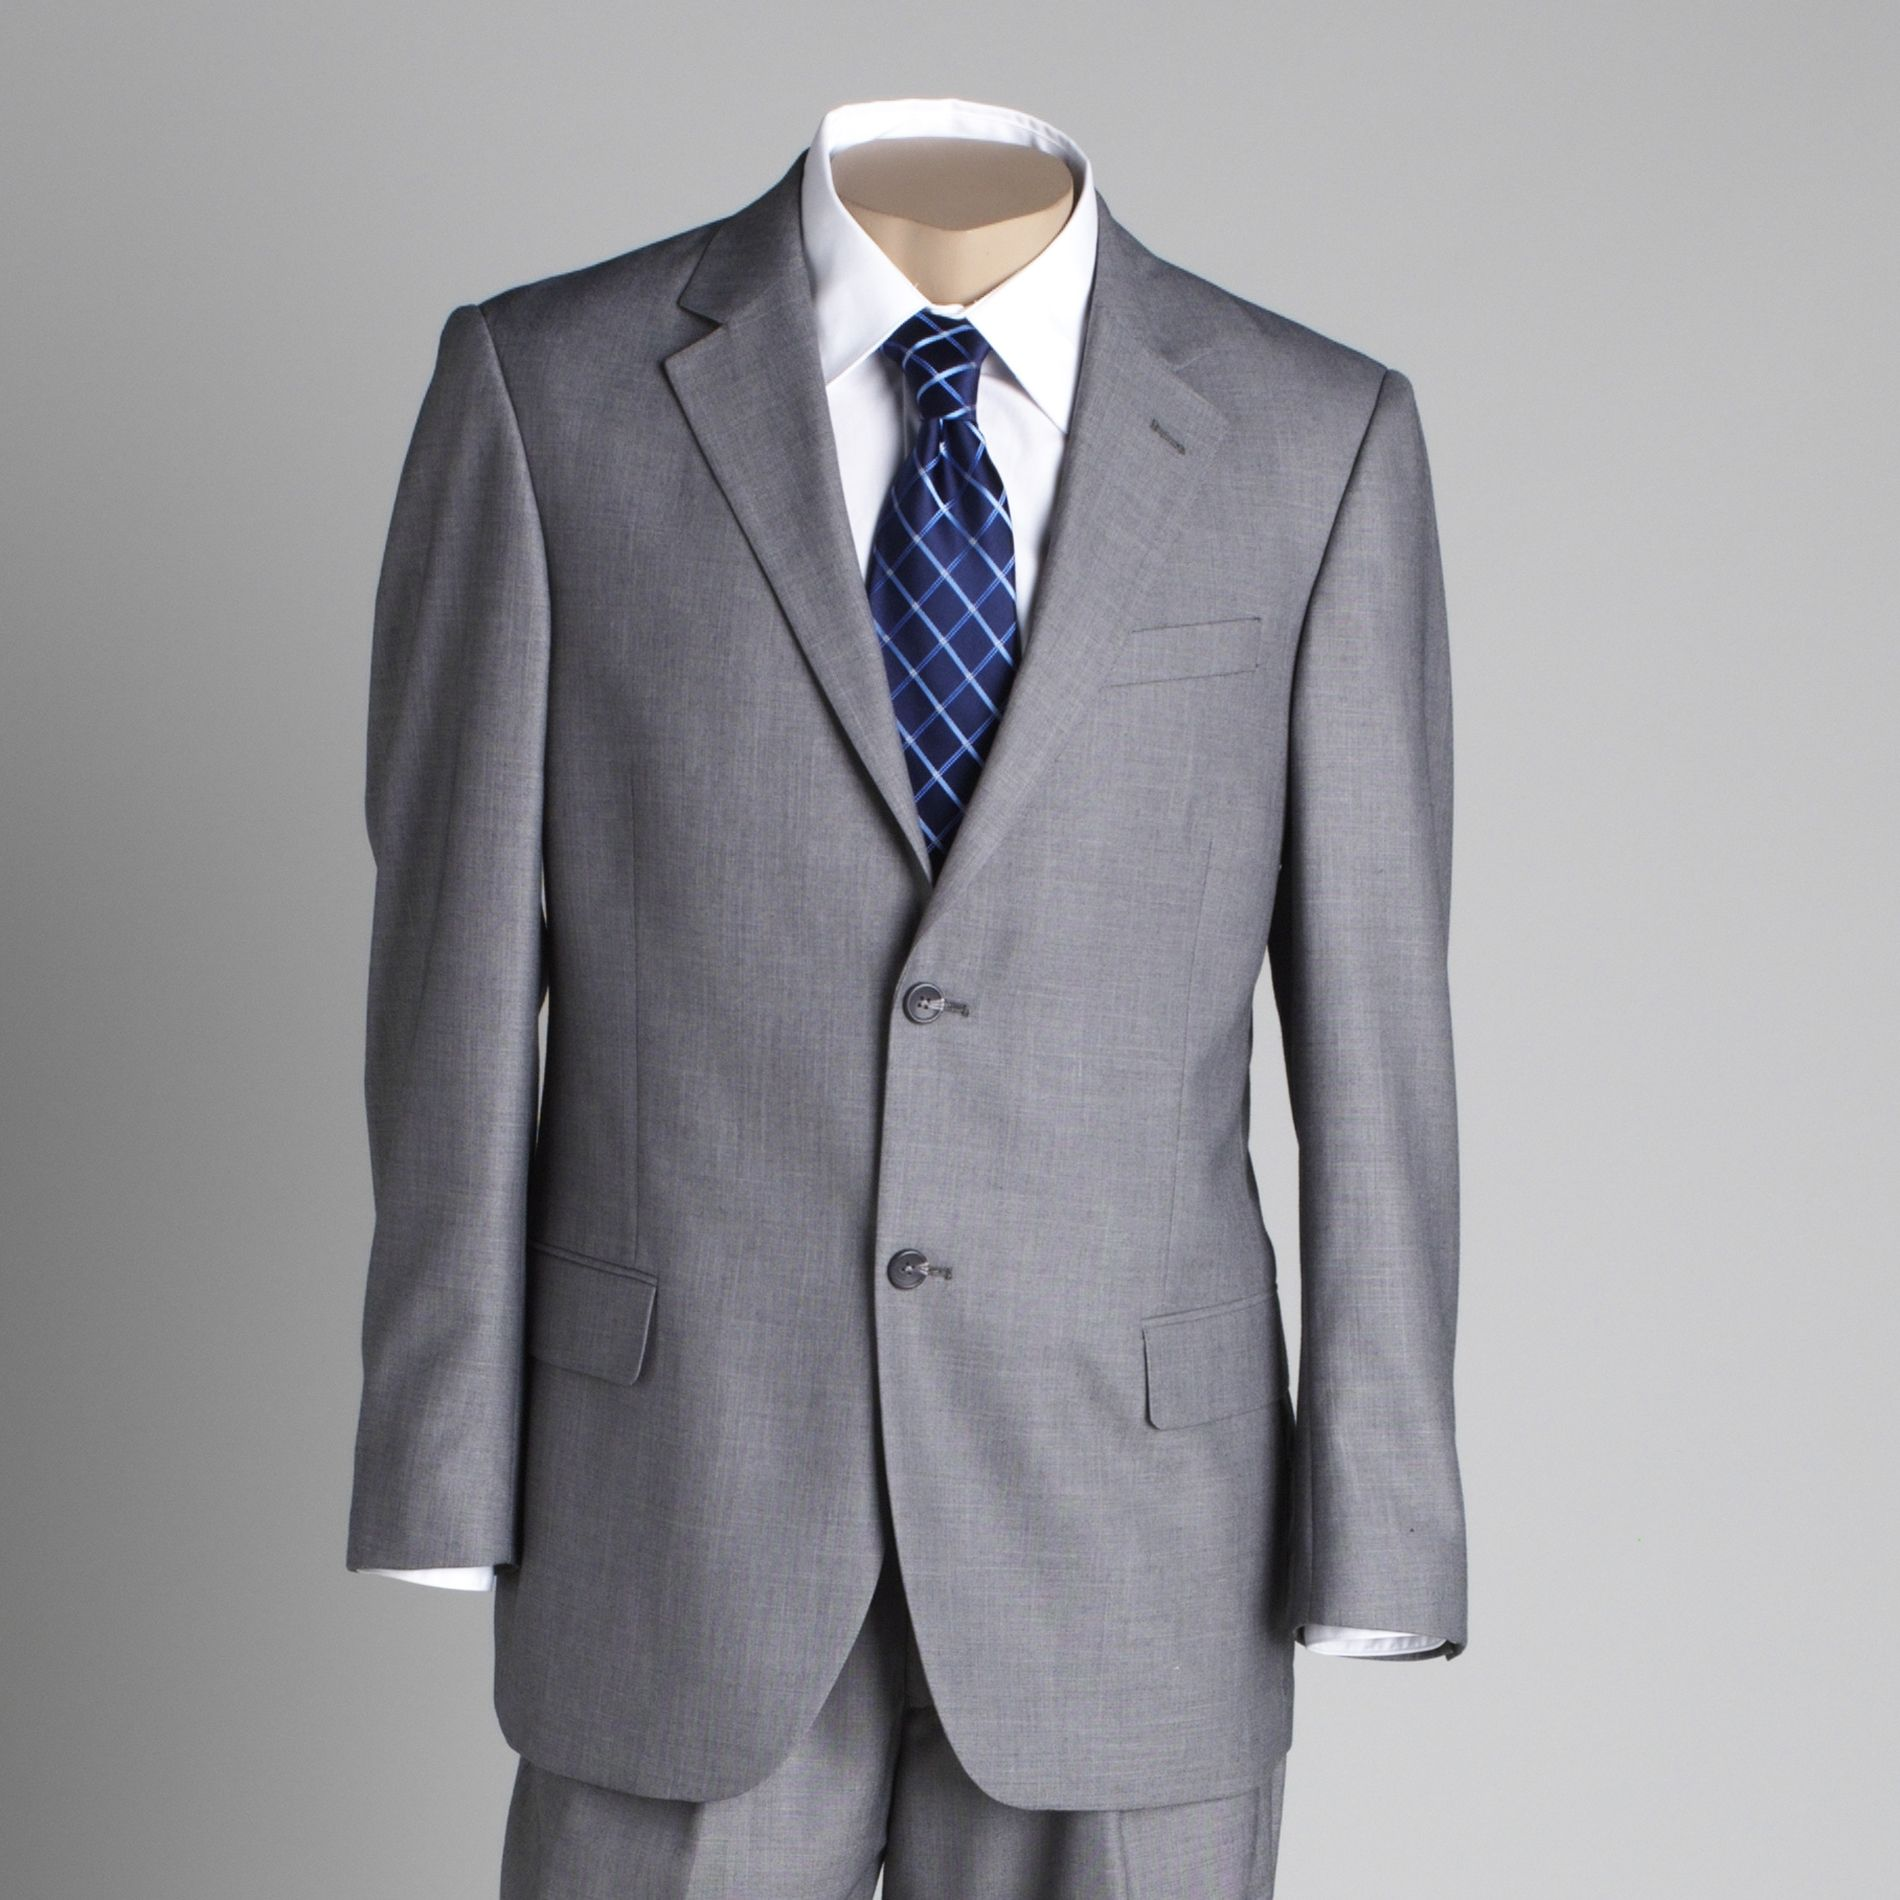 Dockers Men's Suit Coat at Sears.com